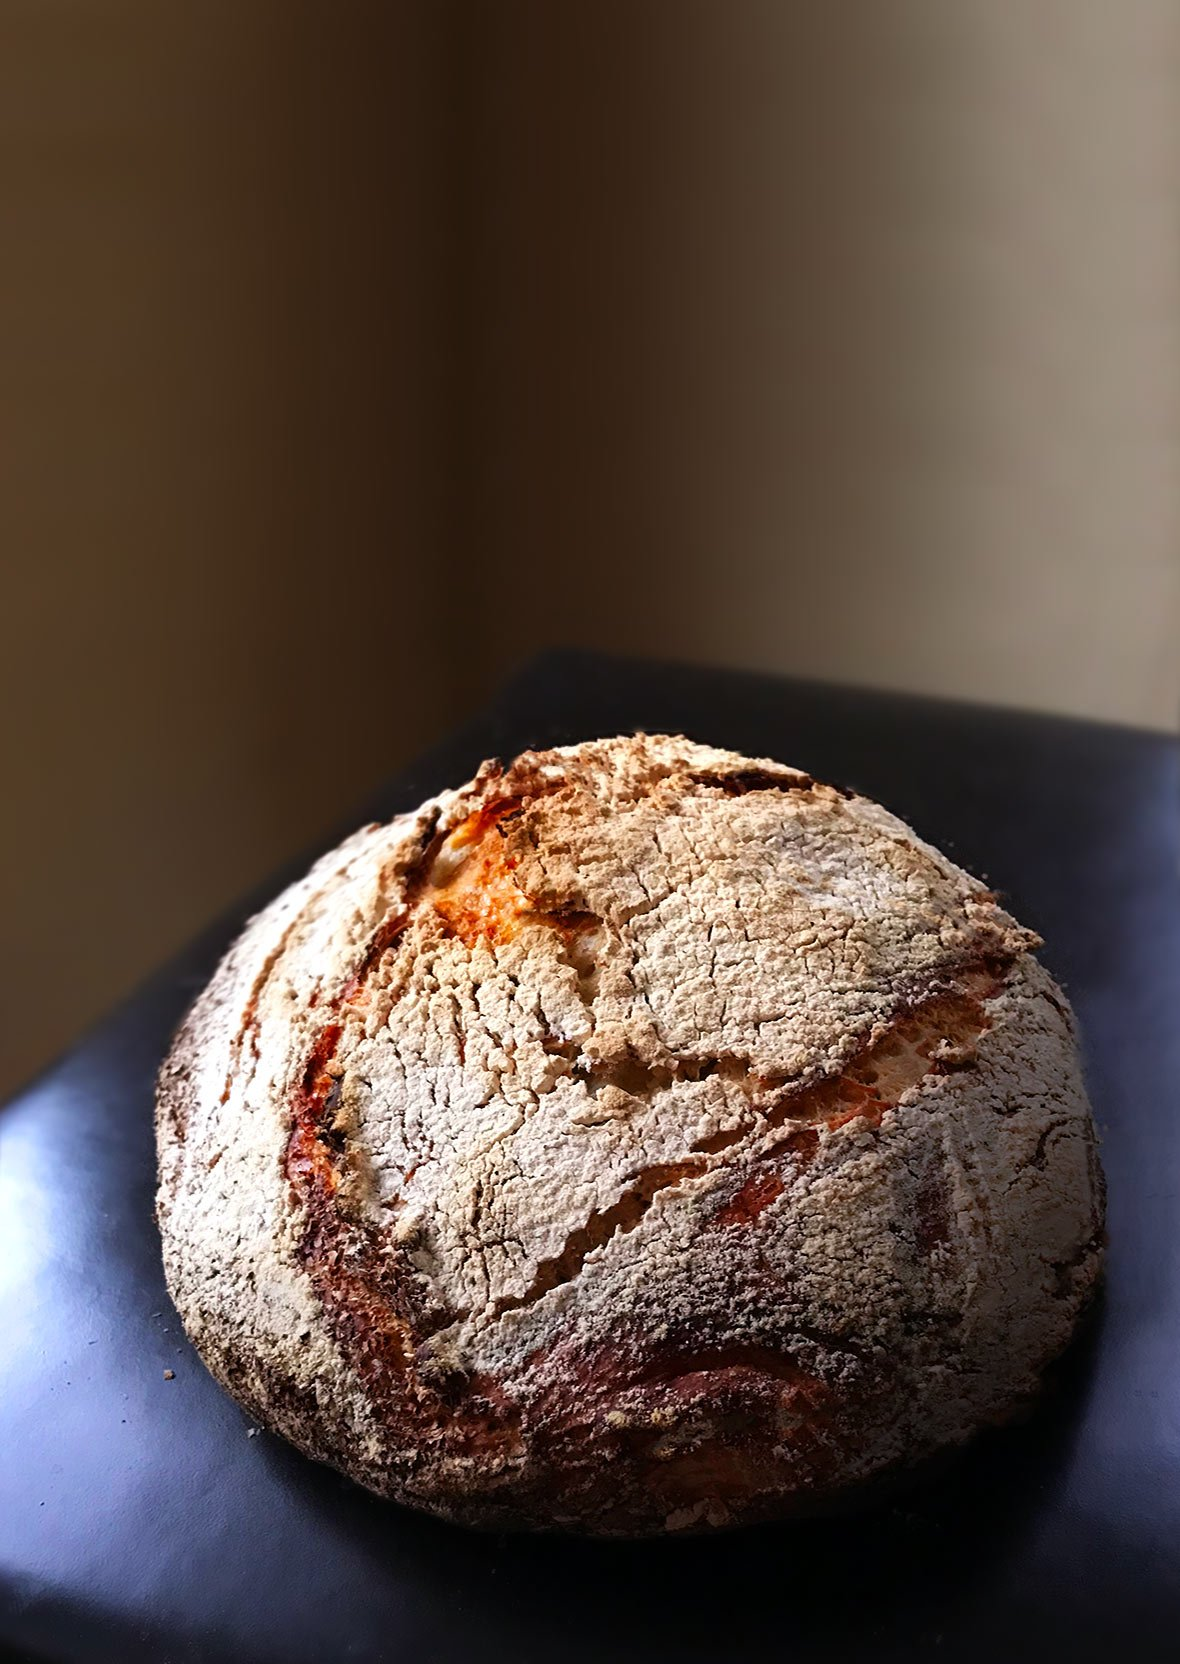 A round loaf of Jim Lahey's no-knead bread, dusted with flour on a leather chair